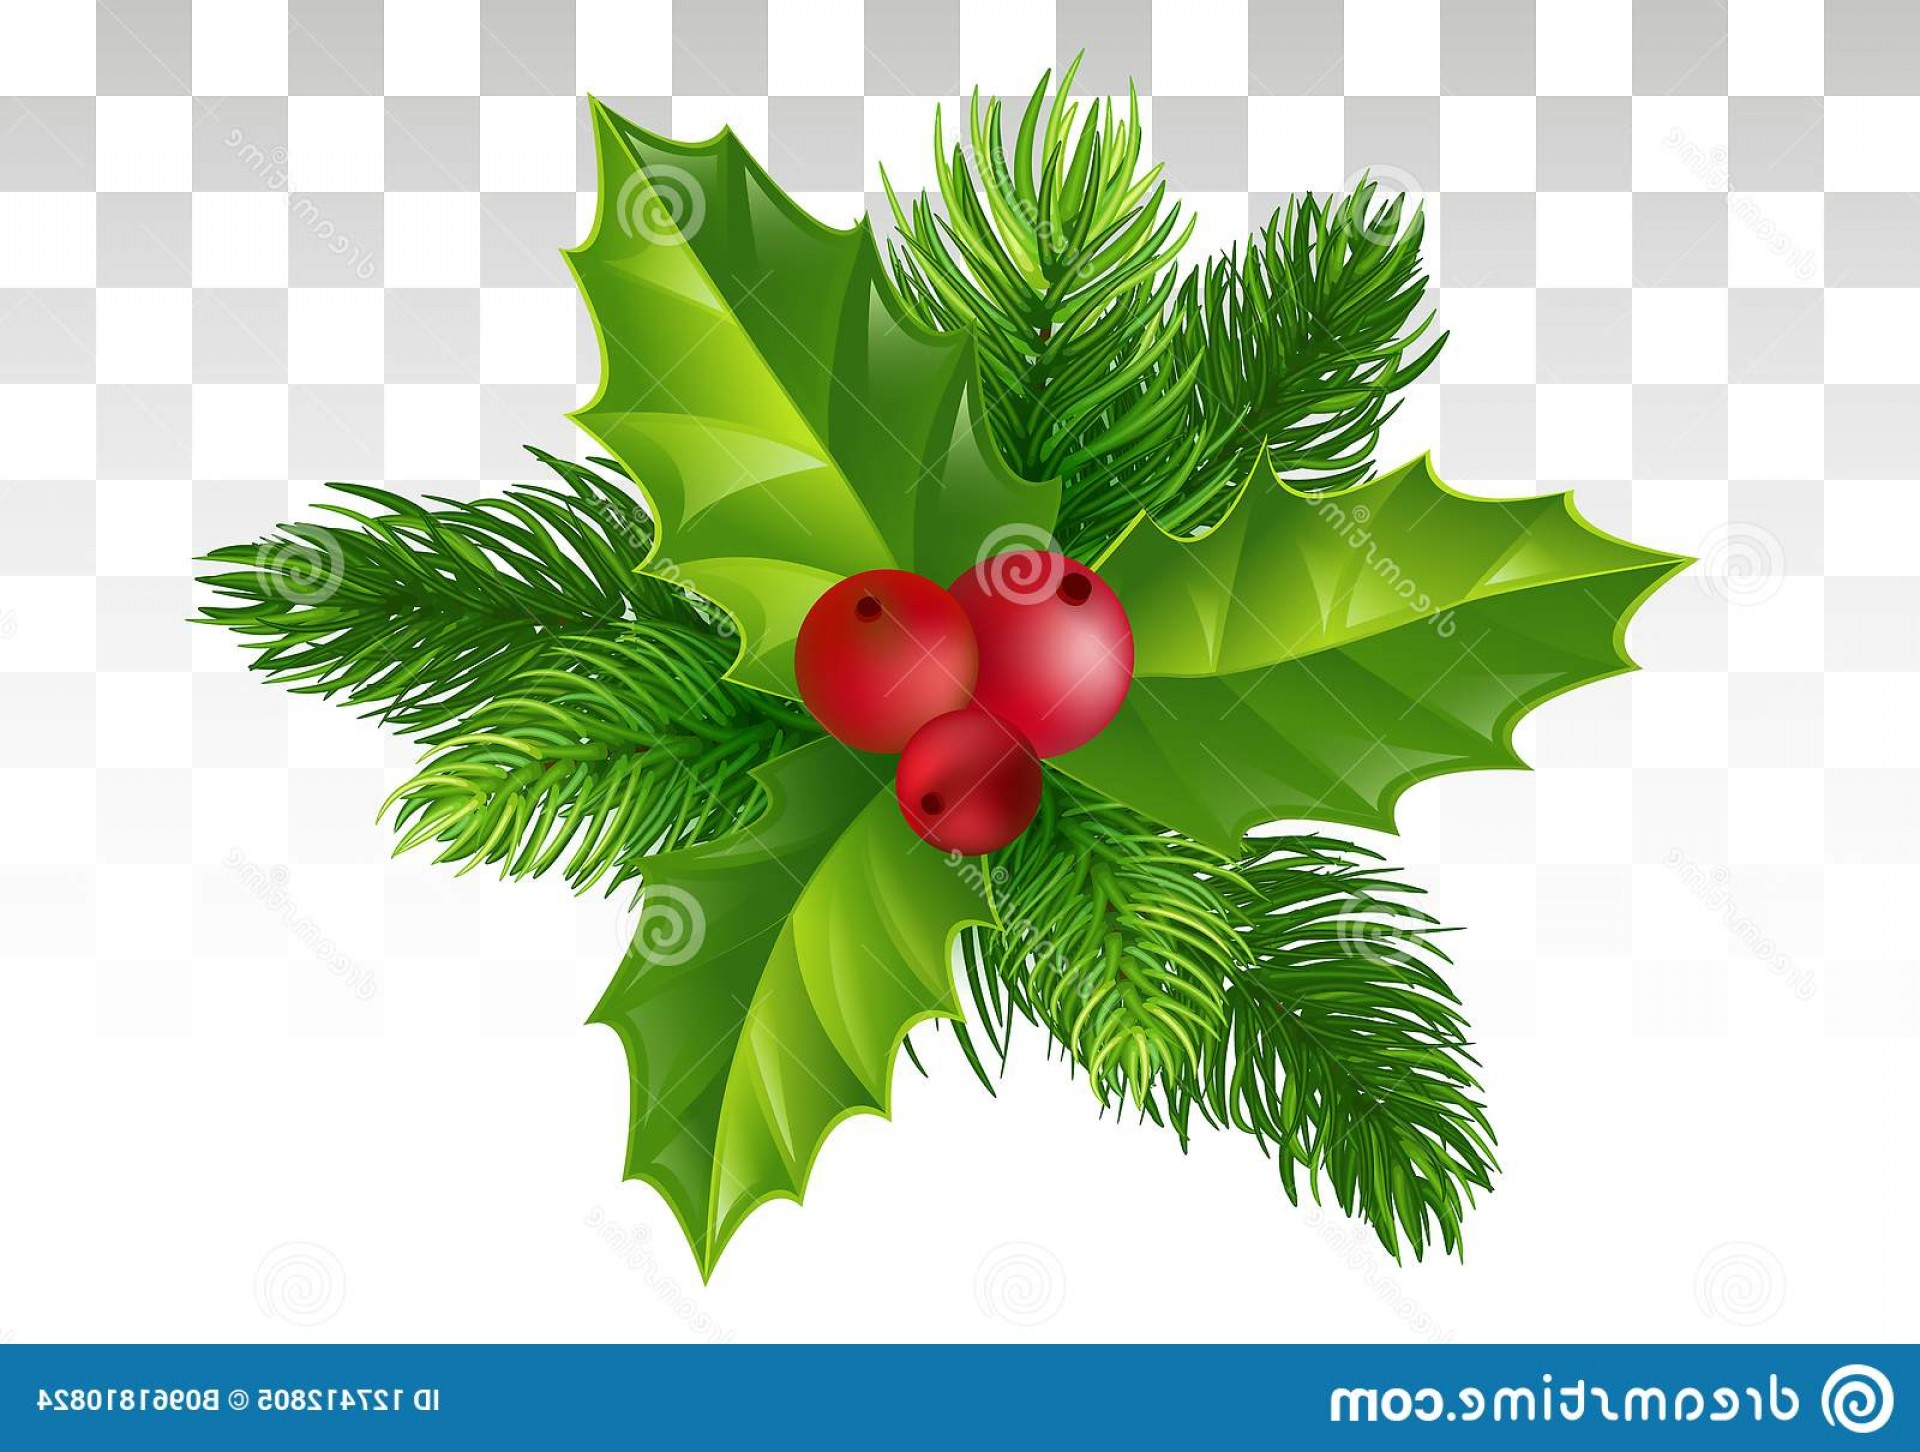 Pine Leaves Vector: Pine Tree Branch Holly Leaves Red Berry Christmas Decorat Winter Decor Branches Padabe Berries Nice Festive Composition Image